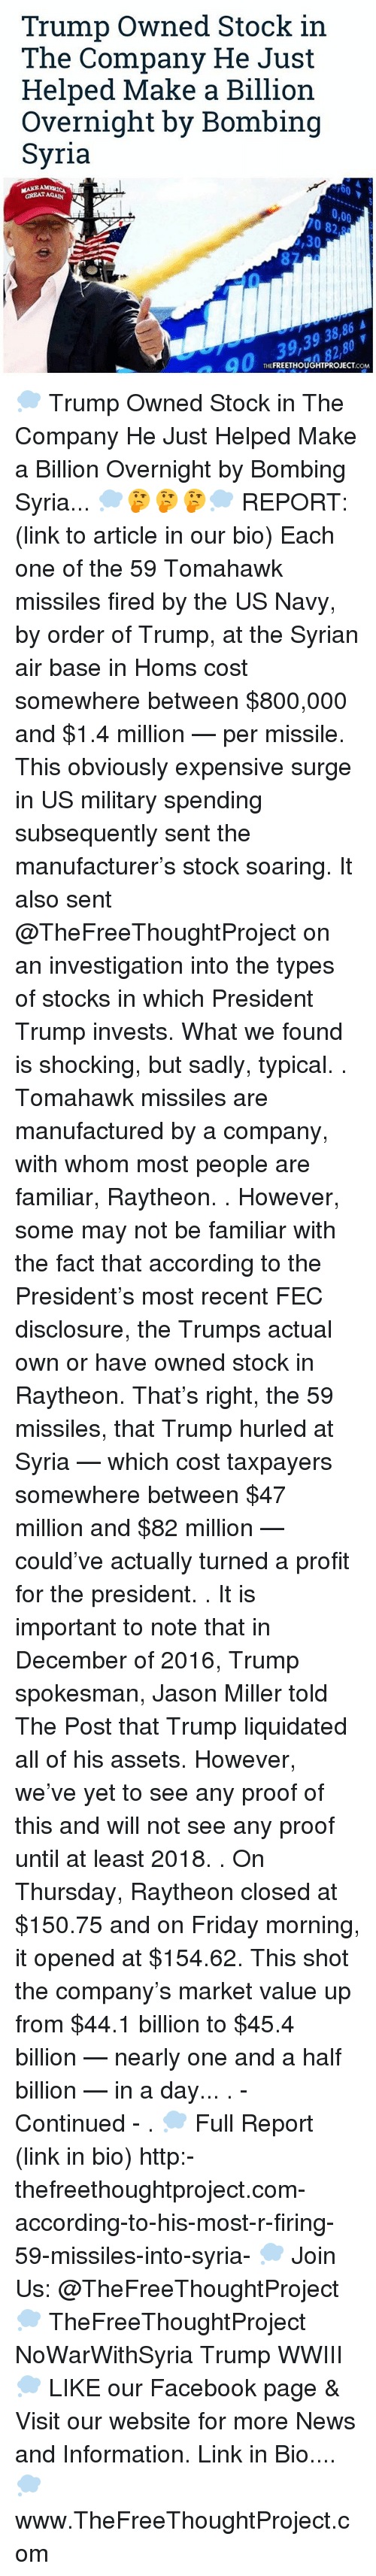 disclosure: Trump Owned Stock in  The Company He Just  Helped Make a Billion  Overnight by Bombing  Syria  MAN AMERICA  0,00  82  ,30  FREETHOUGHTPROJECT  THE  .COM 💭 Trump Owned Stock in The Company He Just Helped Make a Billion Overnight by Bombing Syria... 💭🤔🤔🤔💭 REPORT: (link to article in our bio) Each one of the 59 Tomahawk missiles fired by the US Navy, by order of Trump, at the Syrian air base in Homs cost somewhere between $800,000 and $1.4 million — per missile. This obviously expensive surge in US military spending subsequently sent the manufacturer's stock soaring. It also sent @TheFreeThoughtProject on an investigation into the types of stocks in which President Trump invests. What we found is shocking, but sadly, typical. . Tomahawk missiles are manufactured by a company, with whom most people are familiar, Raytheon. . However, some may not be familiar with the fact that according to the President's most recent FEC disclosure, the Trumps actual own or have owned stock in Raytheon. That's right, the 59 missiles, that Trump hurled at Syria — which cost taxpayers somewhere between $47 million and $82 million — could've actually turned a profit for the president. . It is important to note that in December of 2016, Trump spokesman, Jason Miller told The Post that Trump liquidated all of his assets. However, we've yet to see any proof of this and will not see any proof until at least 2018. . On Thursday, Raytheon closed at $150.75 and on Friday morning, it opened at $154.62. This shot the company's market value up from $44.1 billion to $45.4 billion — nearly one and a half billion — in a day... . - Continued - . 💭 Full Report (link in bio) http:-thefreethoughtproject.com-according-to-his-most-r-firing-59-missiles-into-syria- 💭 Join Us: @TheFreeThoughtProject 💭 TheFreeThoughtProject NoWarWithSyria Trump WWIII 💭 LIKE our Facebook page & Visit our website for more News and Information. Link in Bio.... 💭 www.TheFreeThoughtProject.com